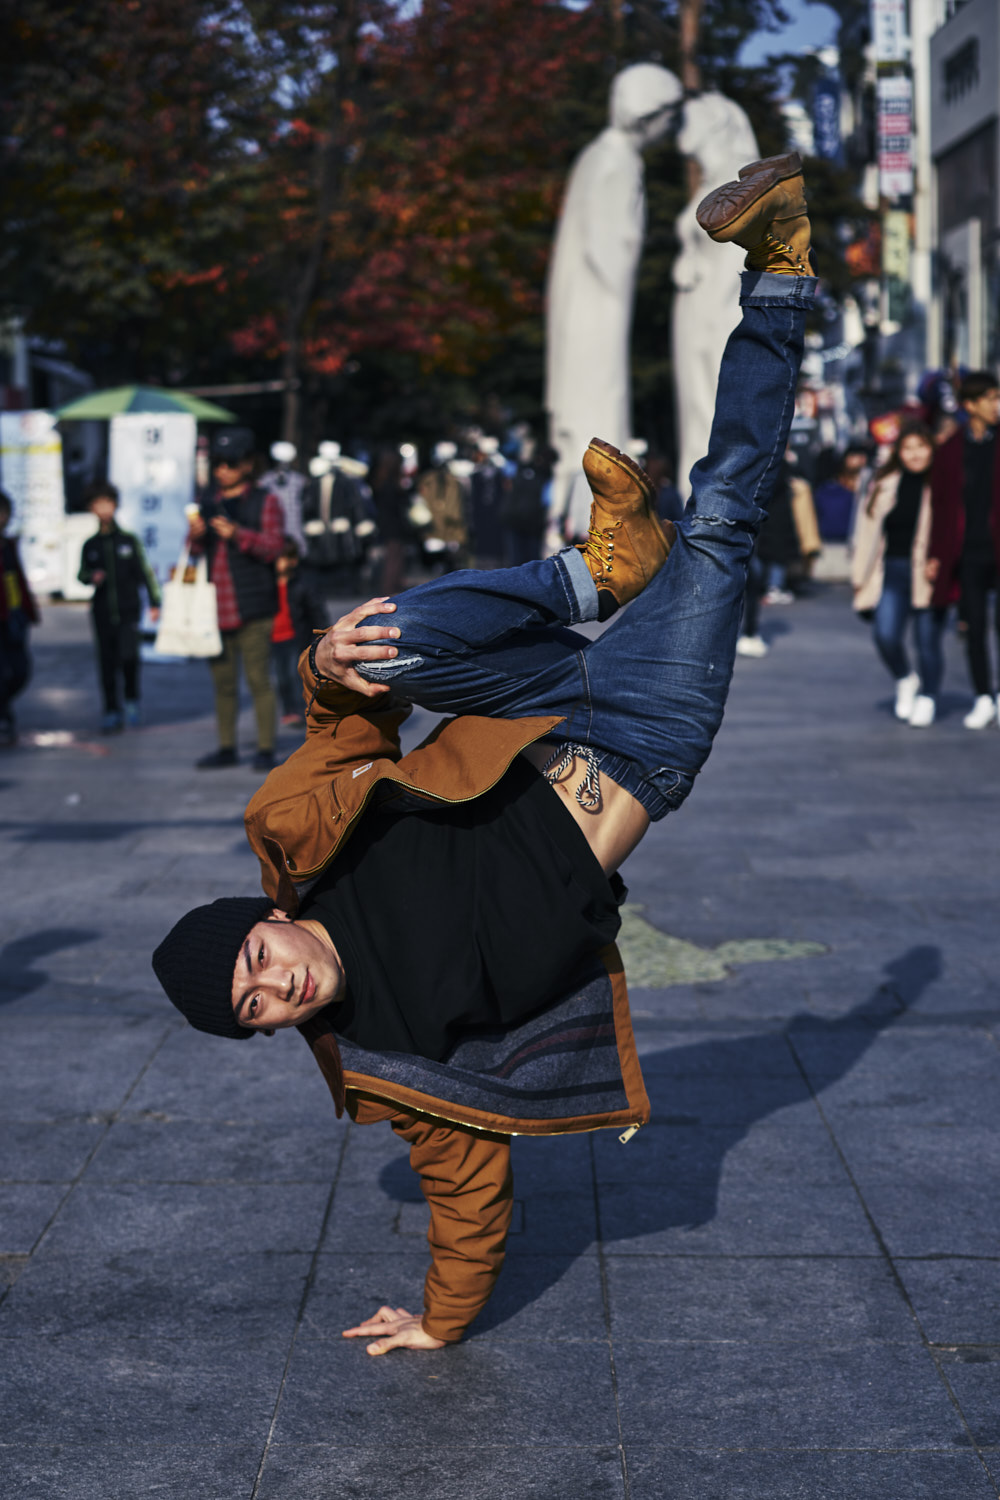 ARX_Bboys_19.JPG